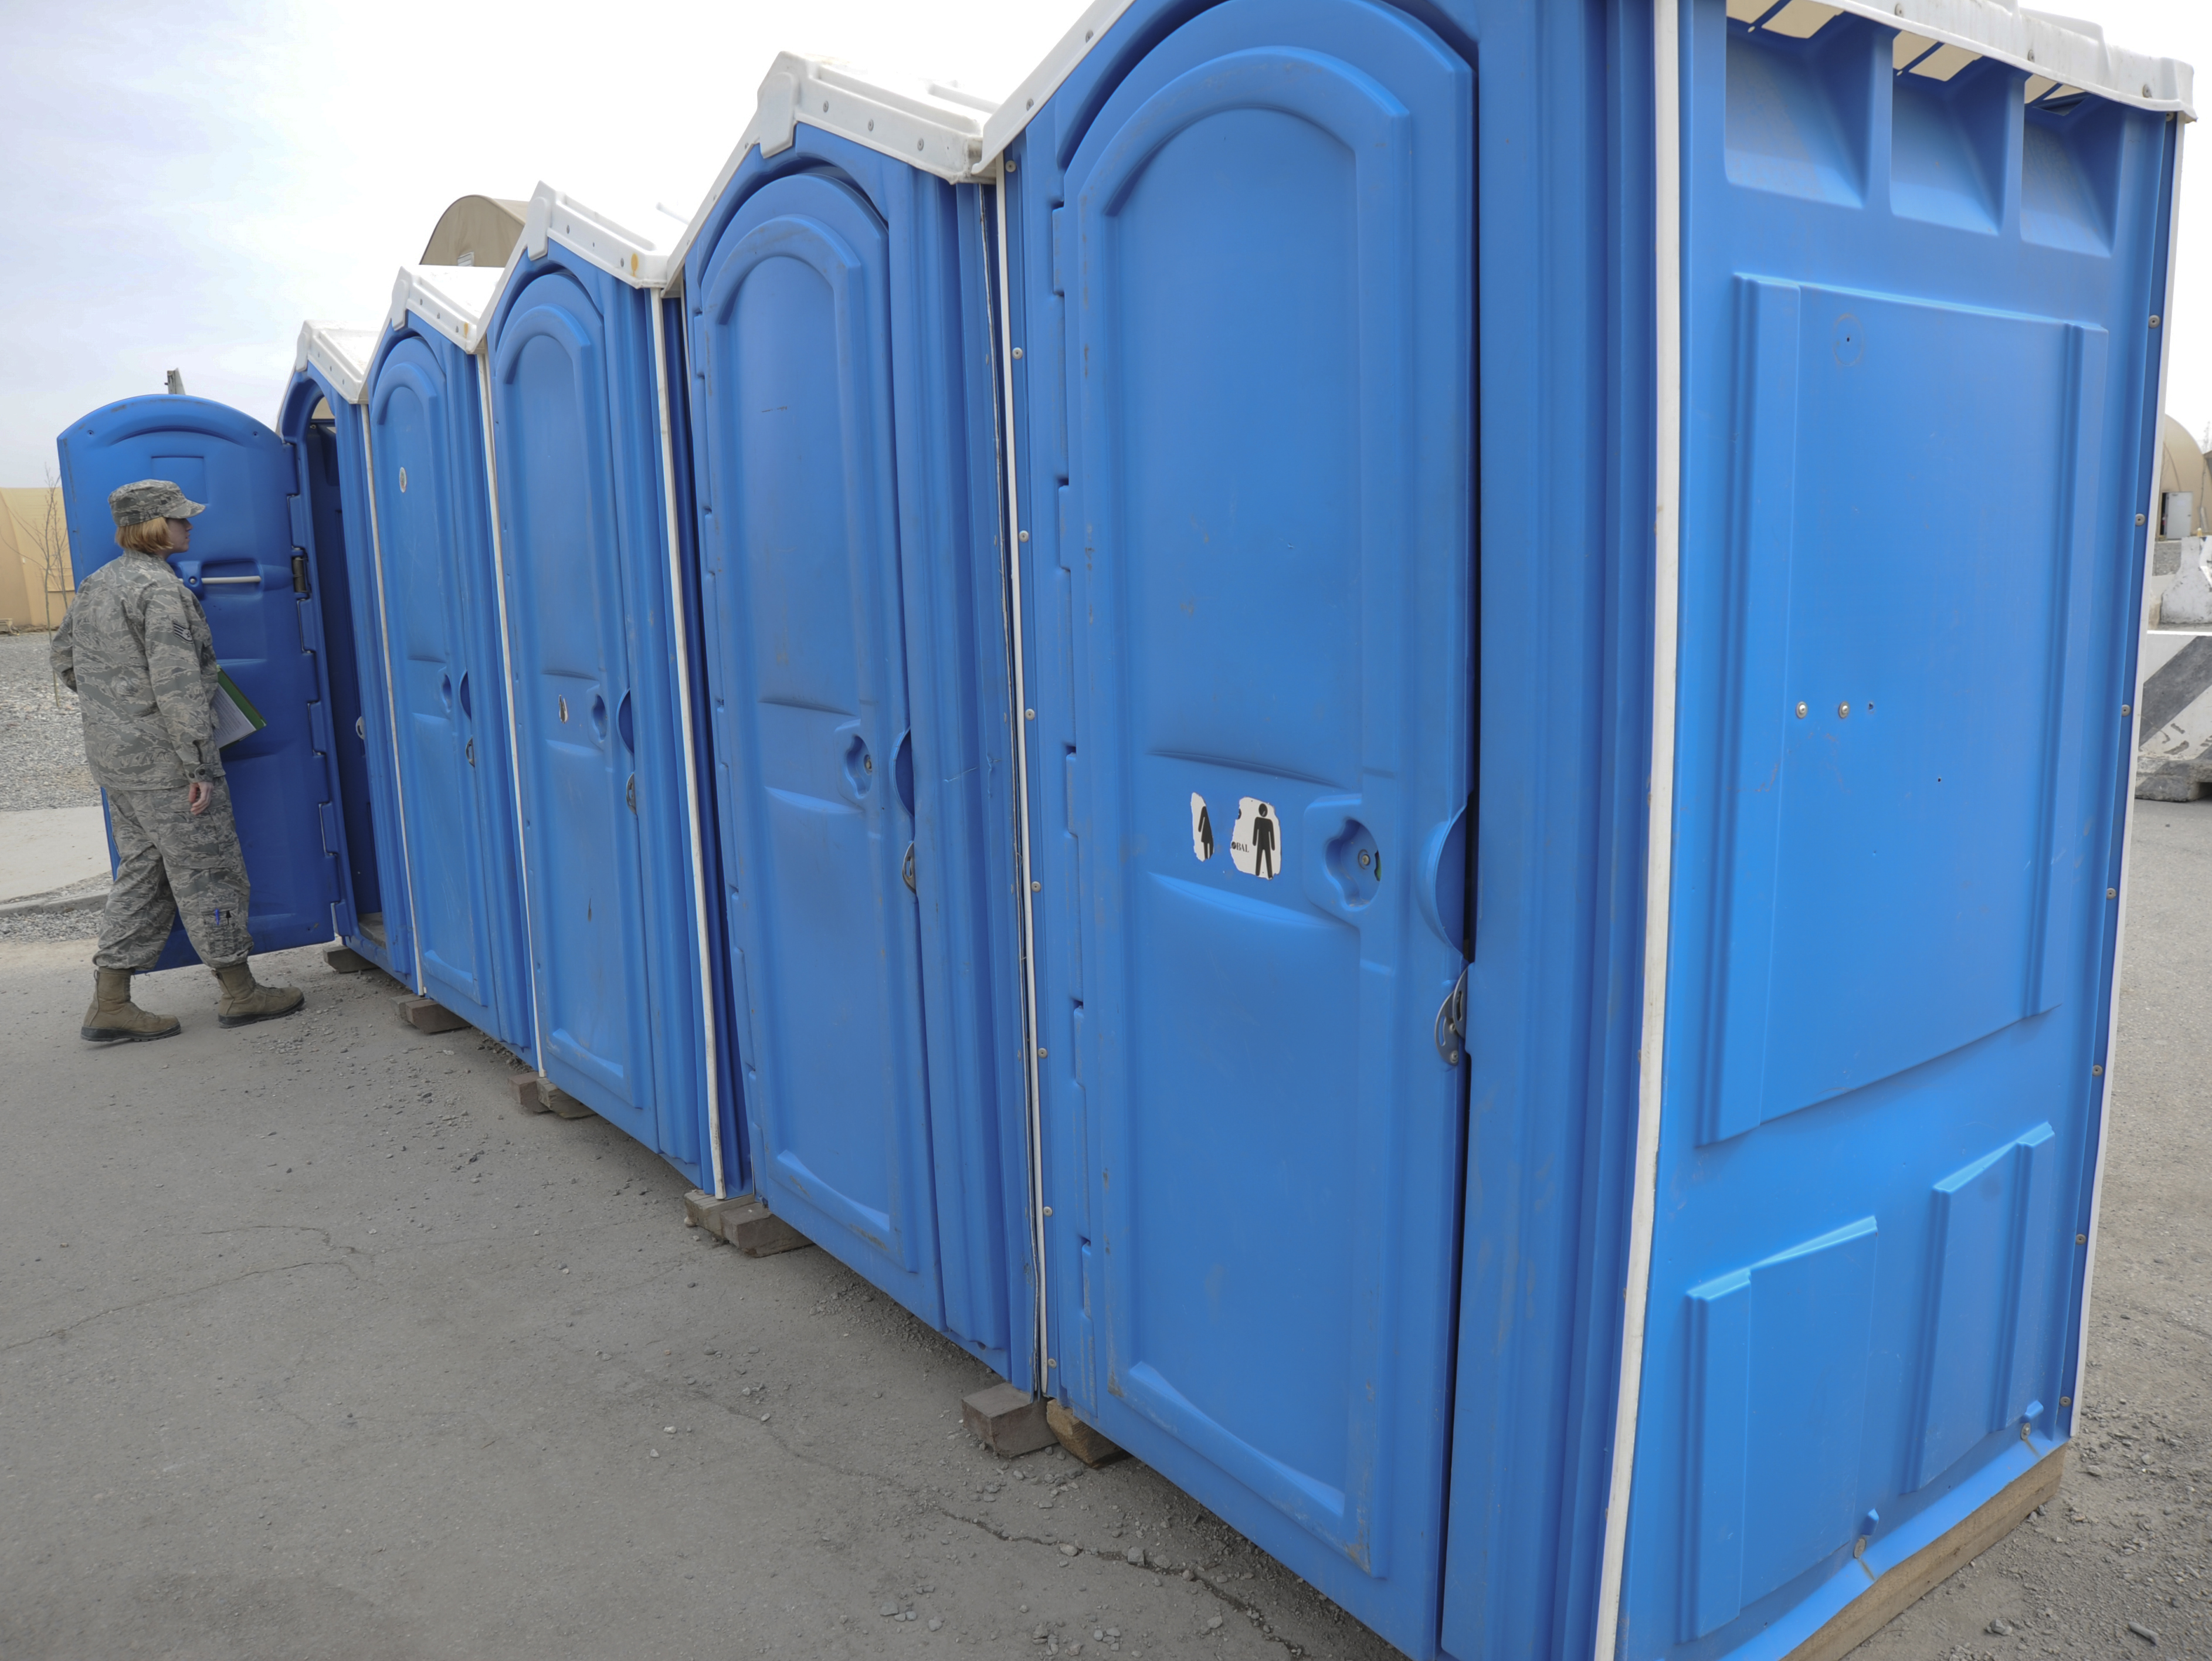 High Pressure Commercial Toilet Market Segmented Type of Meter, End User Industry and Region: Growth, Trends and Forecasts 2018 to 2023